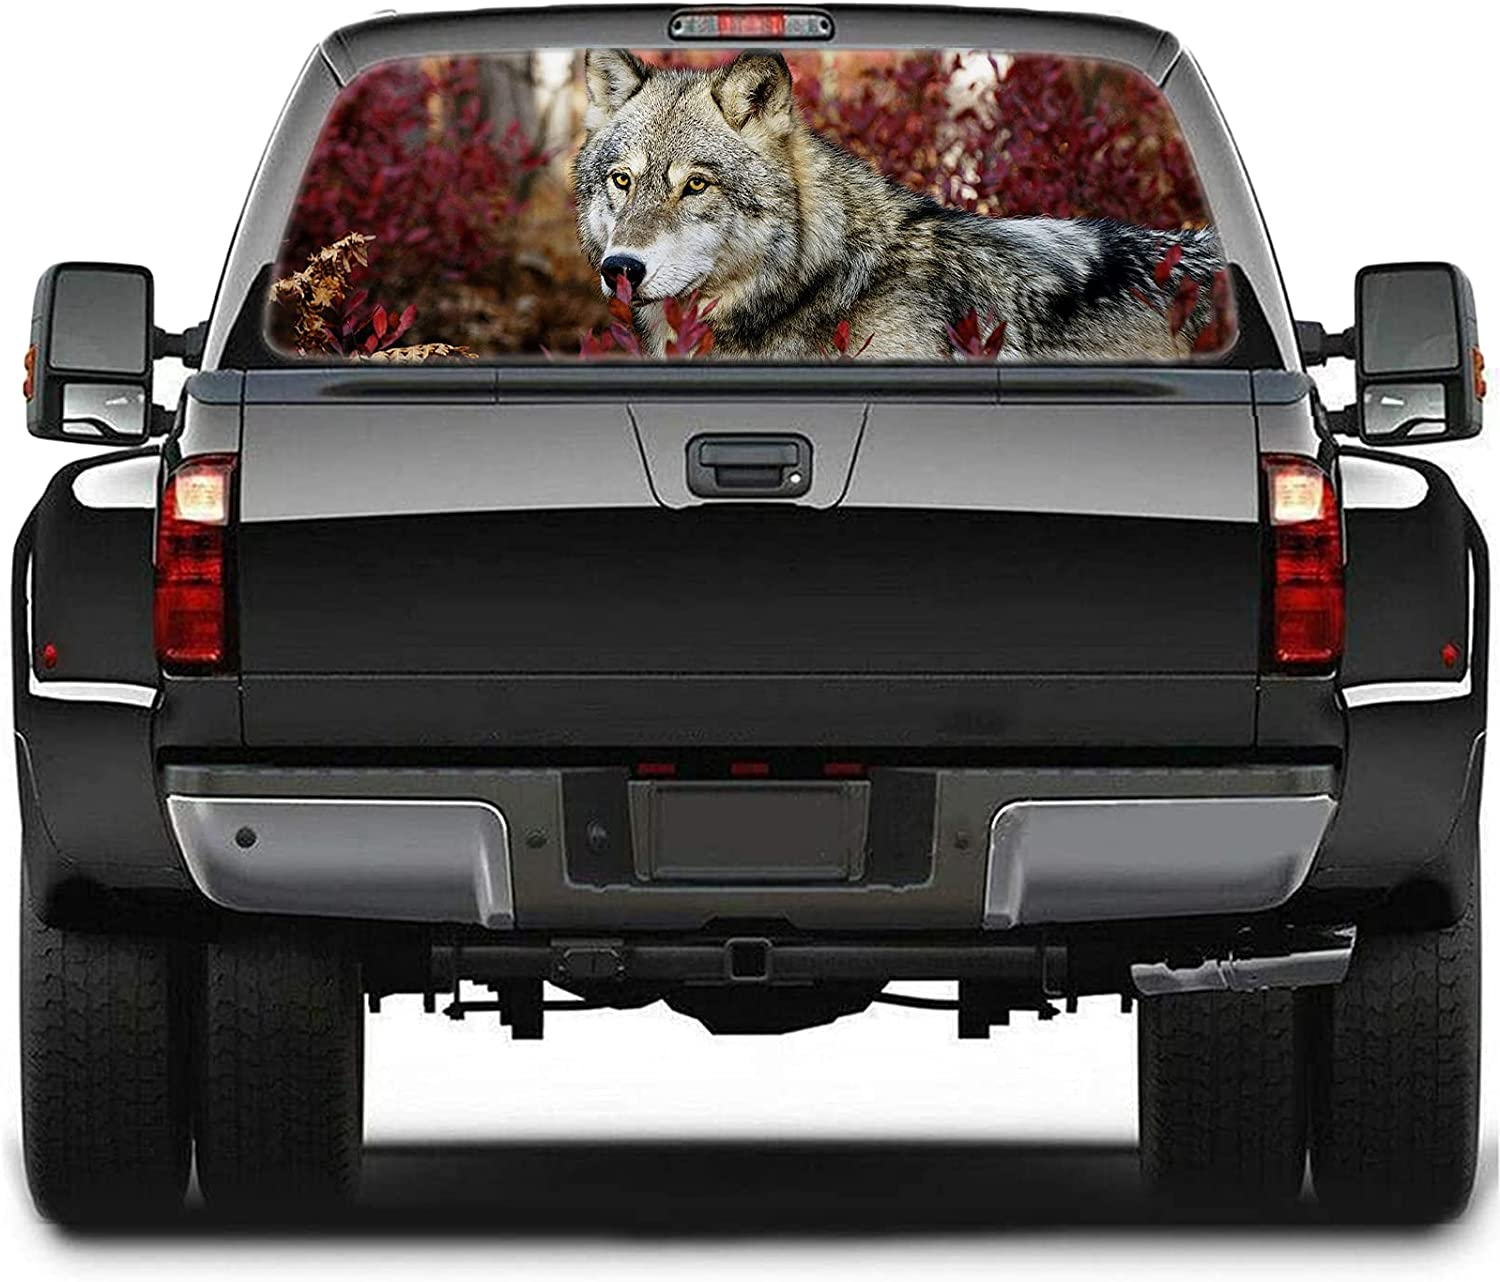 Ultra-Cheap Deals Truck Decals - Arctic Wolf Bu Decal Wrap Sticker Cash special price Tailgate